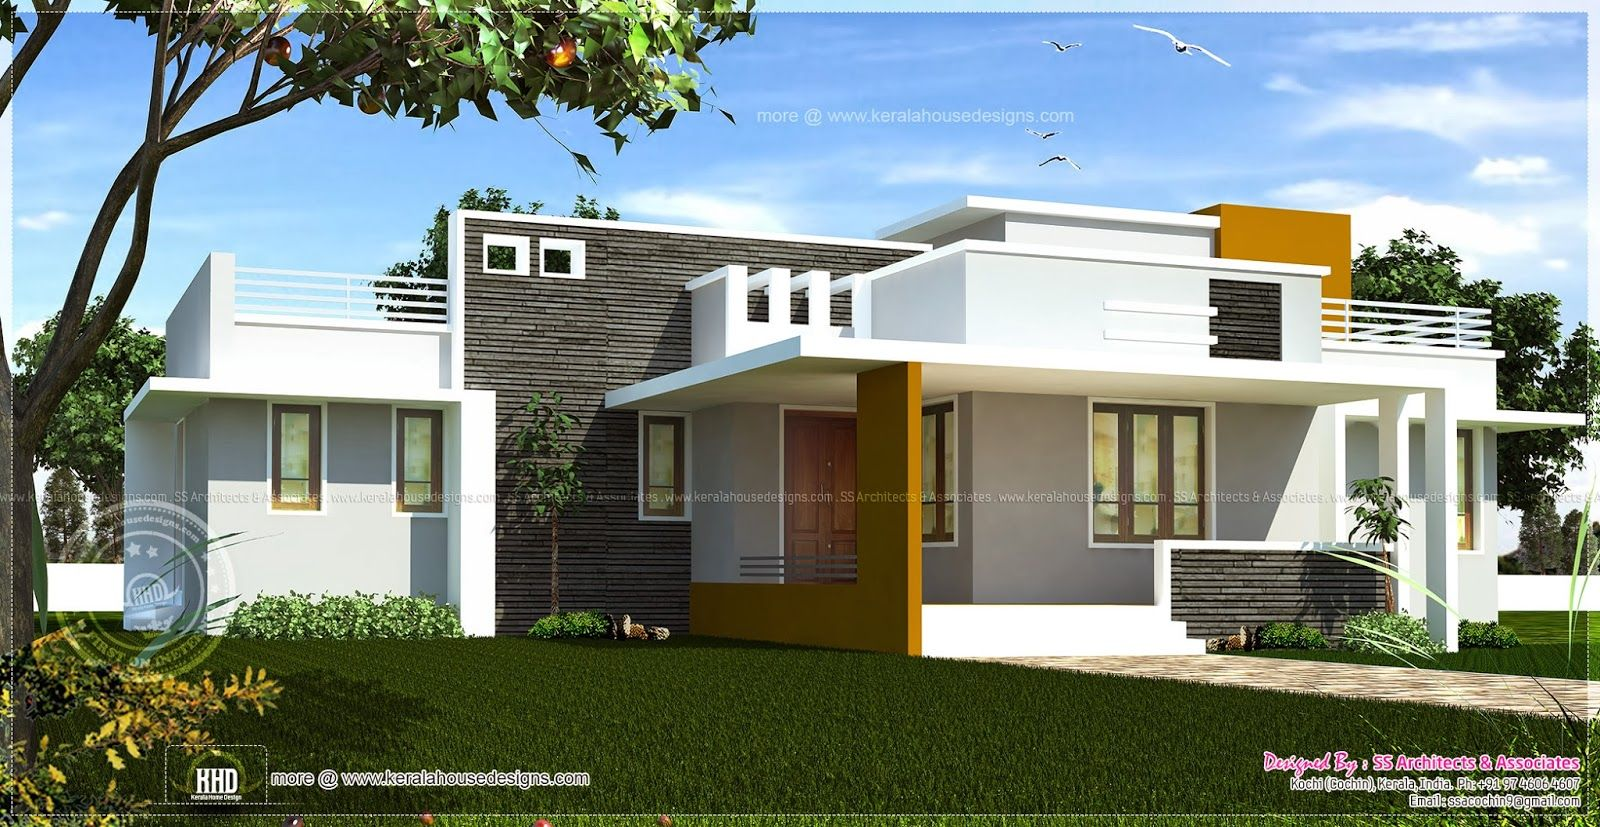 Excellent single home designs single floor contemporary for Single house front design